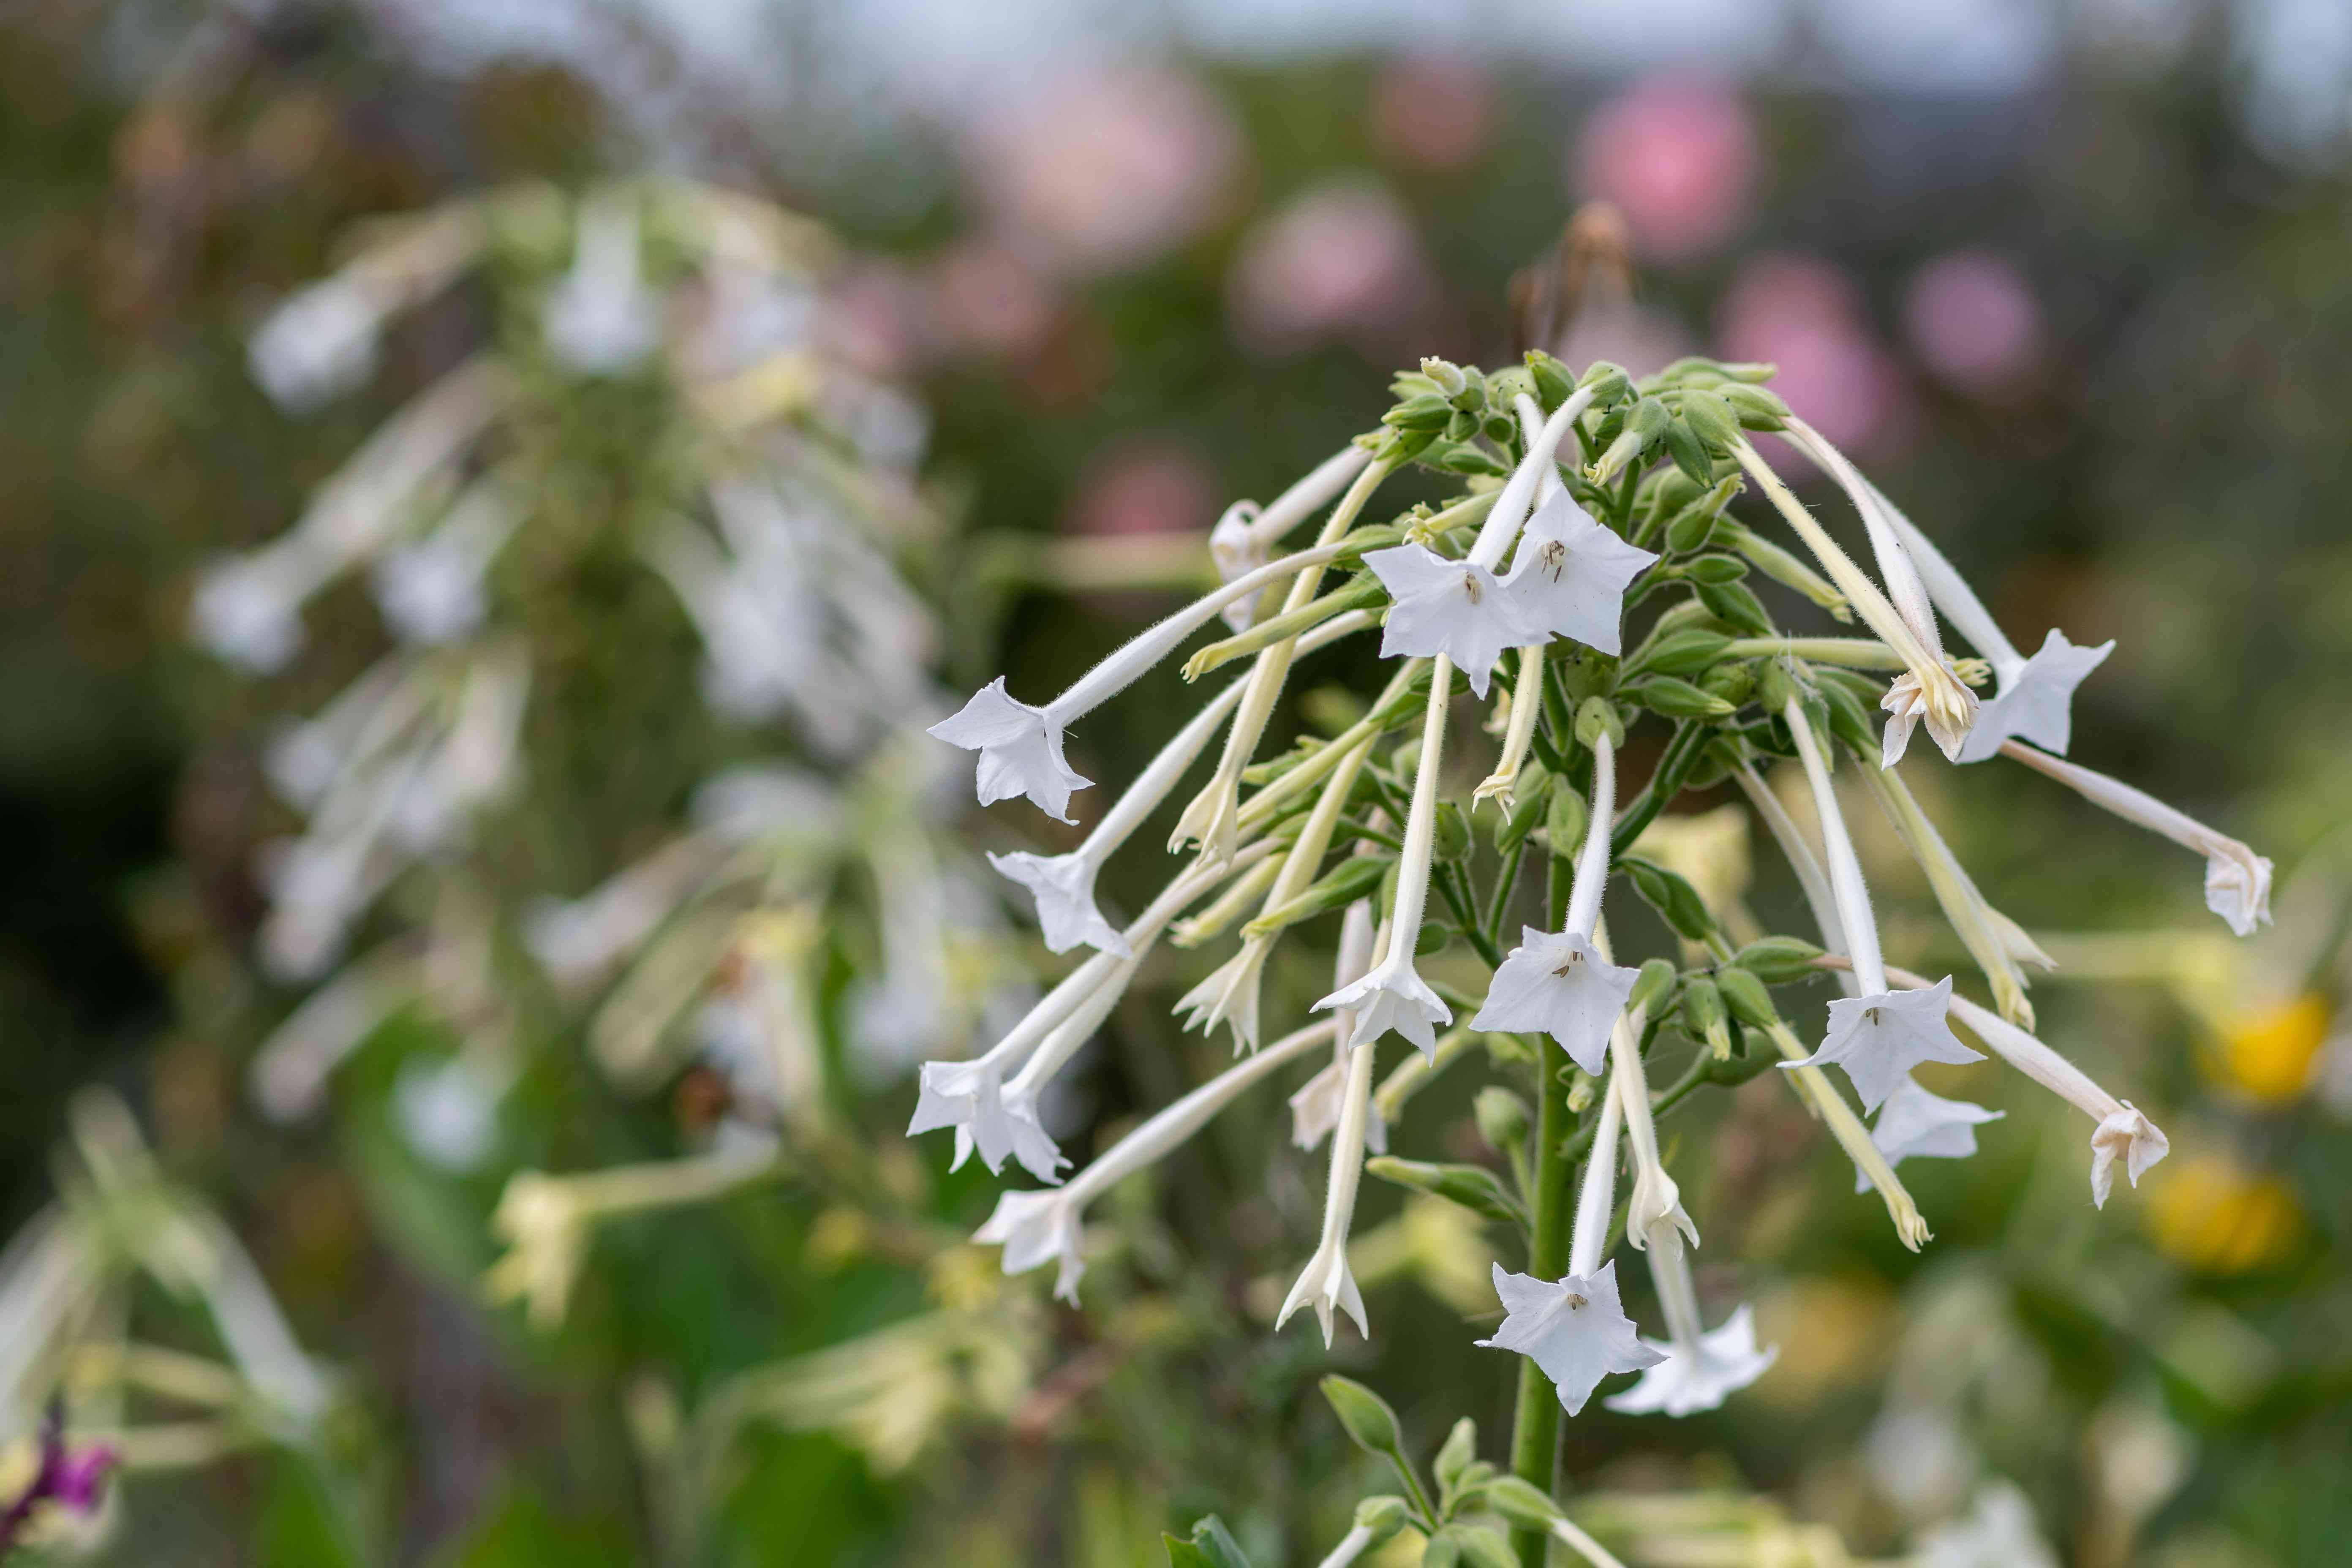 Close Up Of Flowering Tobacco In Bloom.